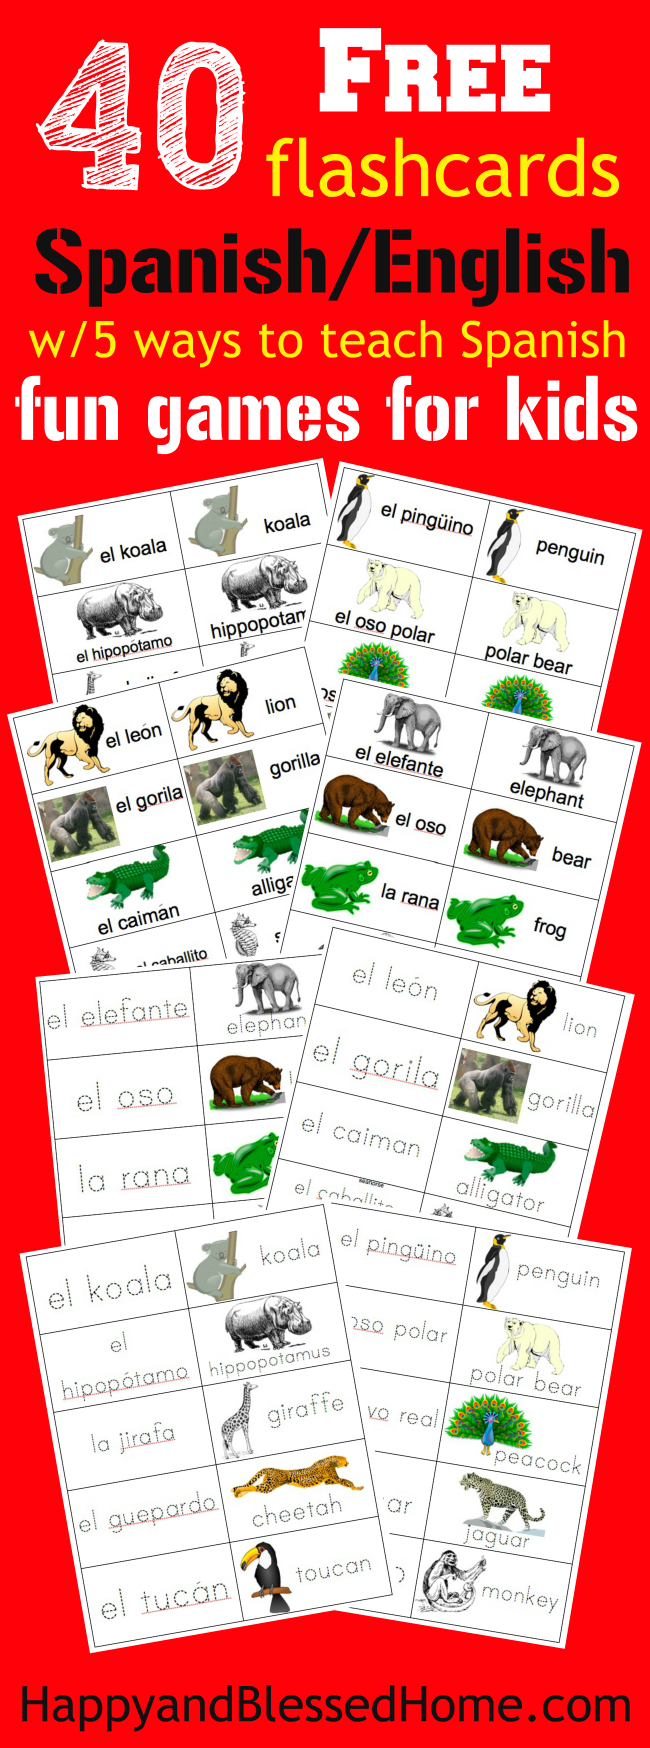 Dashing image with regard to spanish flashcards printable